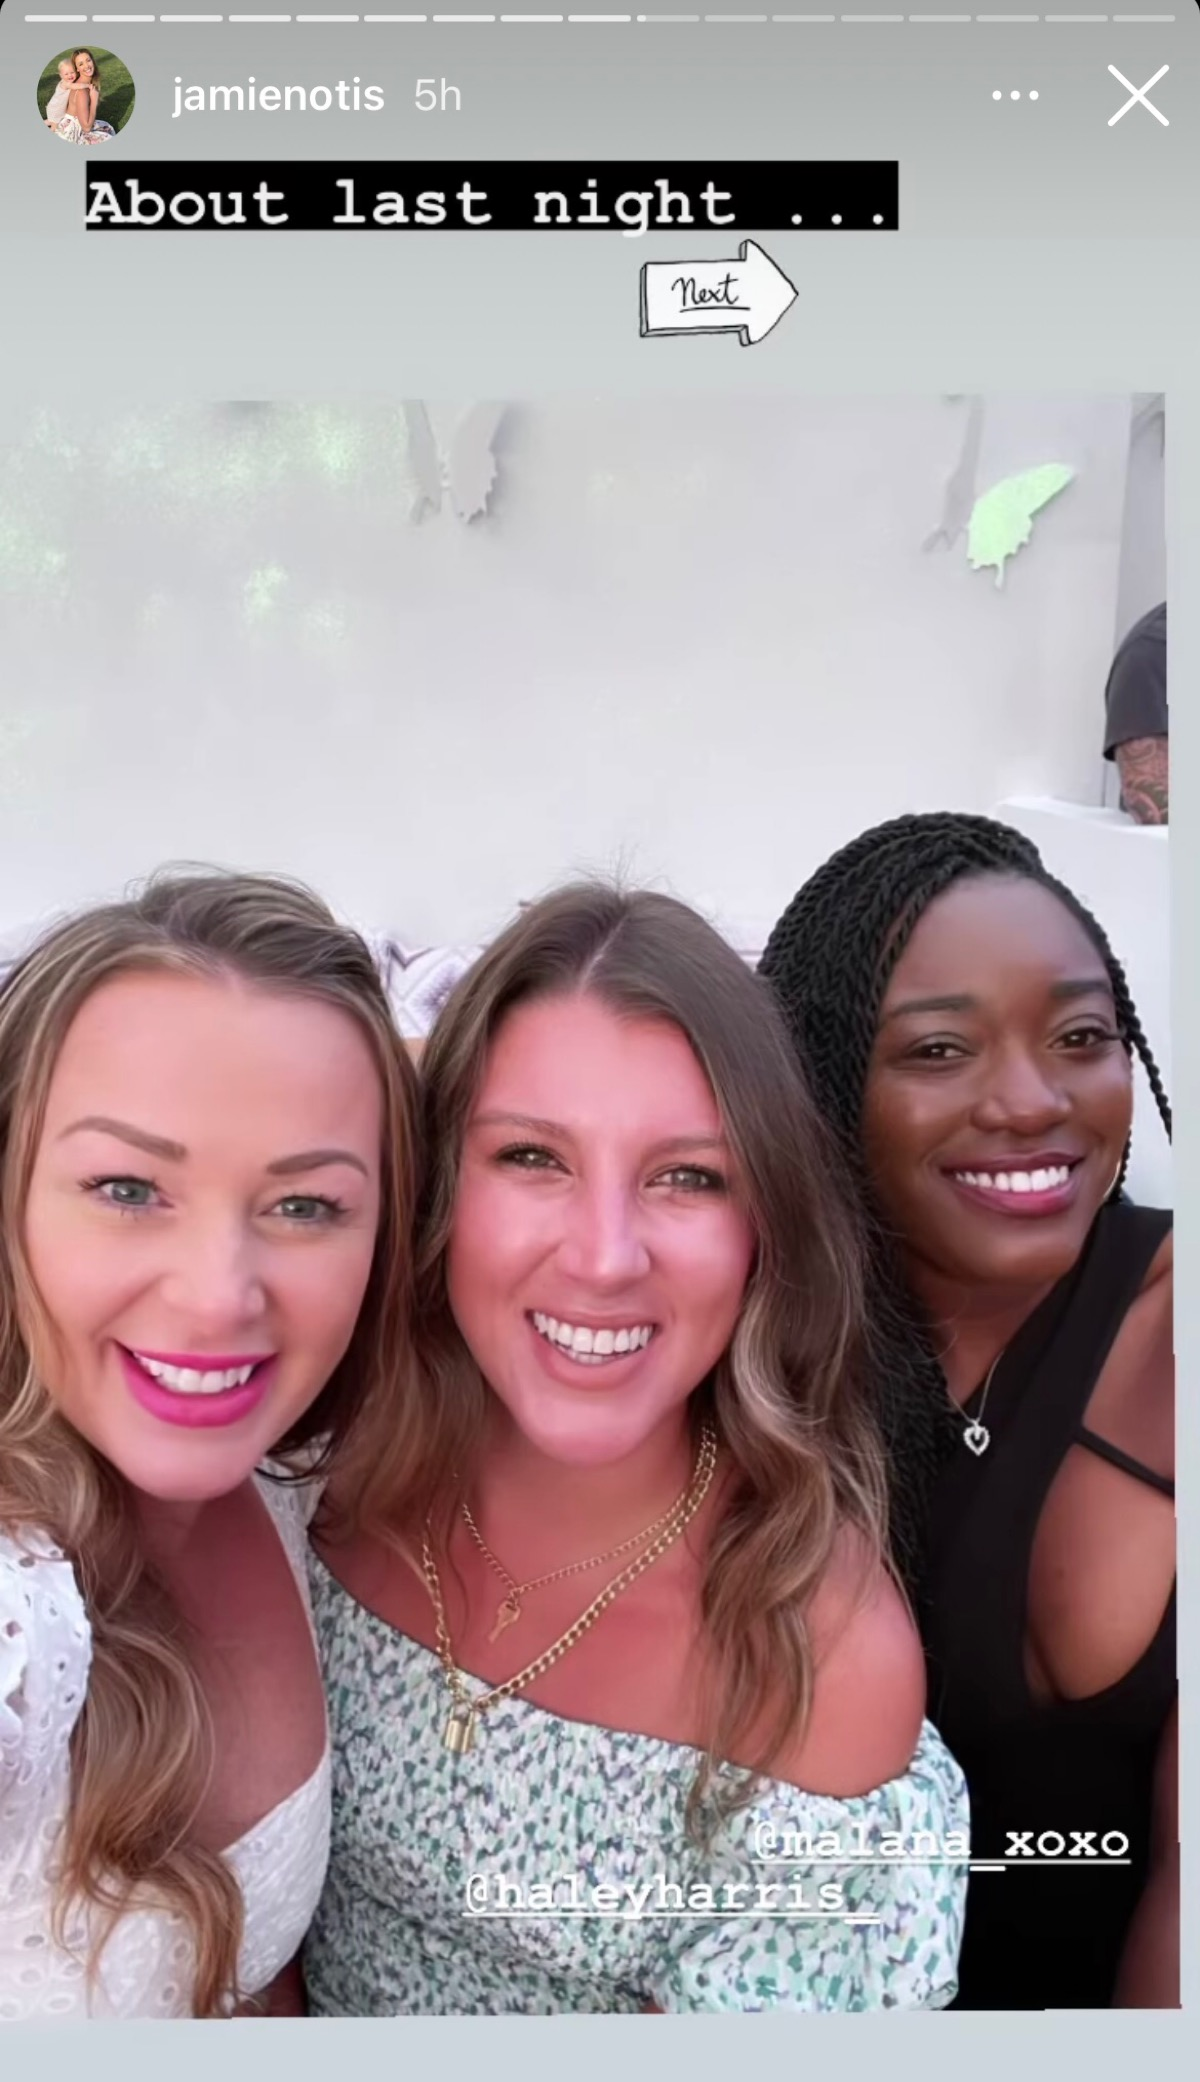 Jamie Otis poses with Haley Harris and Paige Banks in Miami